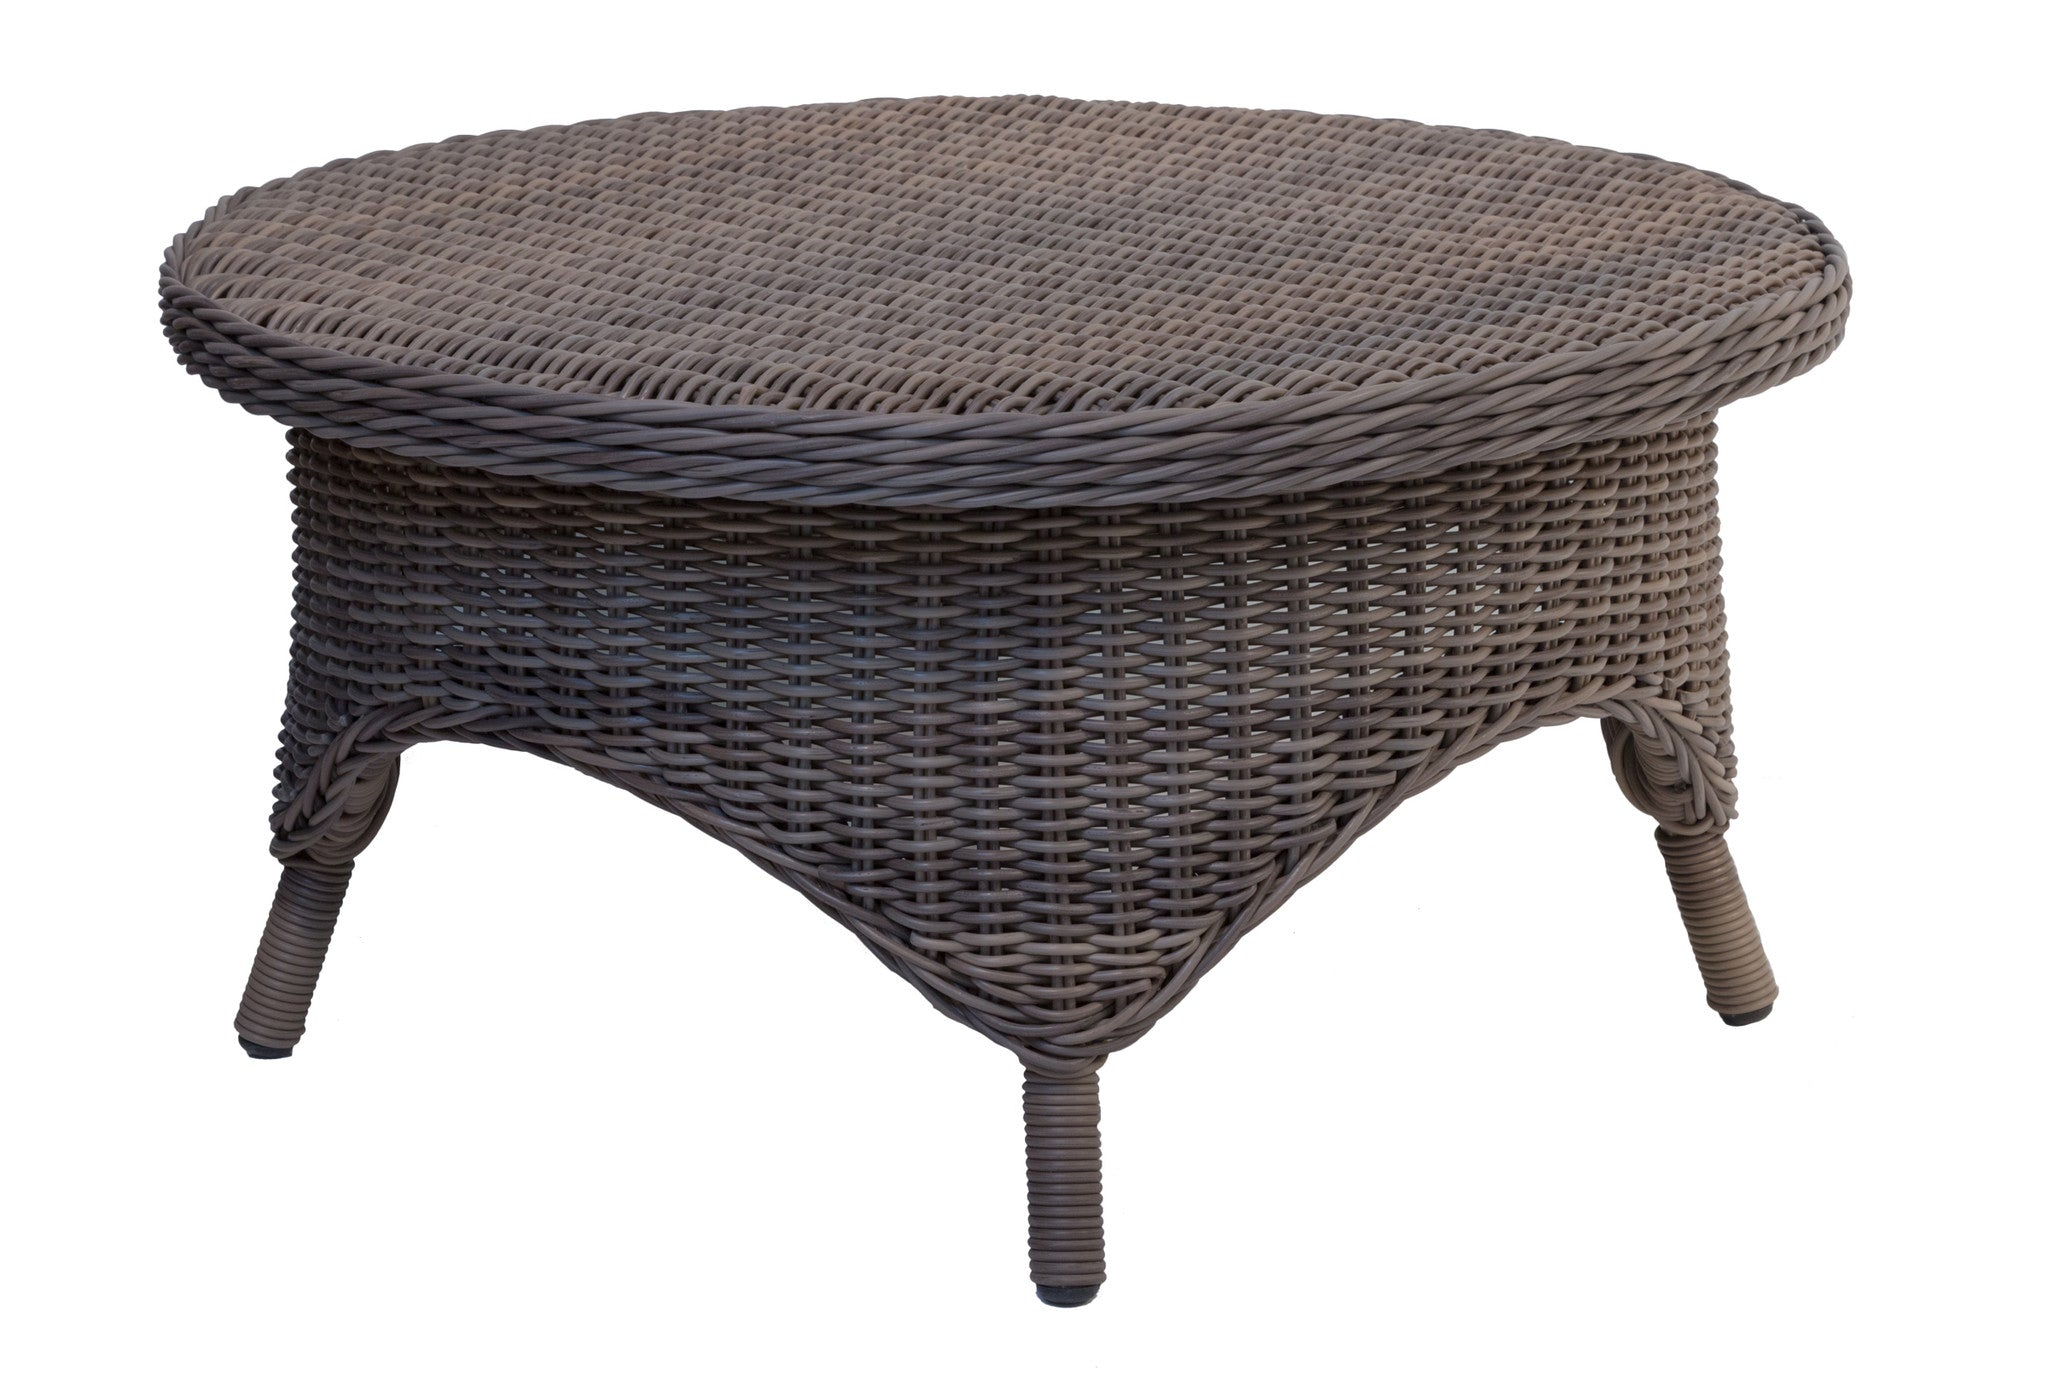 Conservatory Outdoor Coffee Table Designer Wicker by Tribor